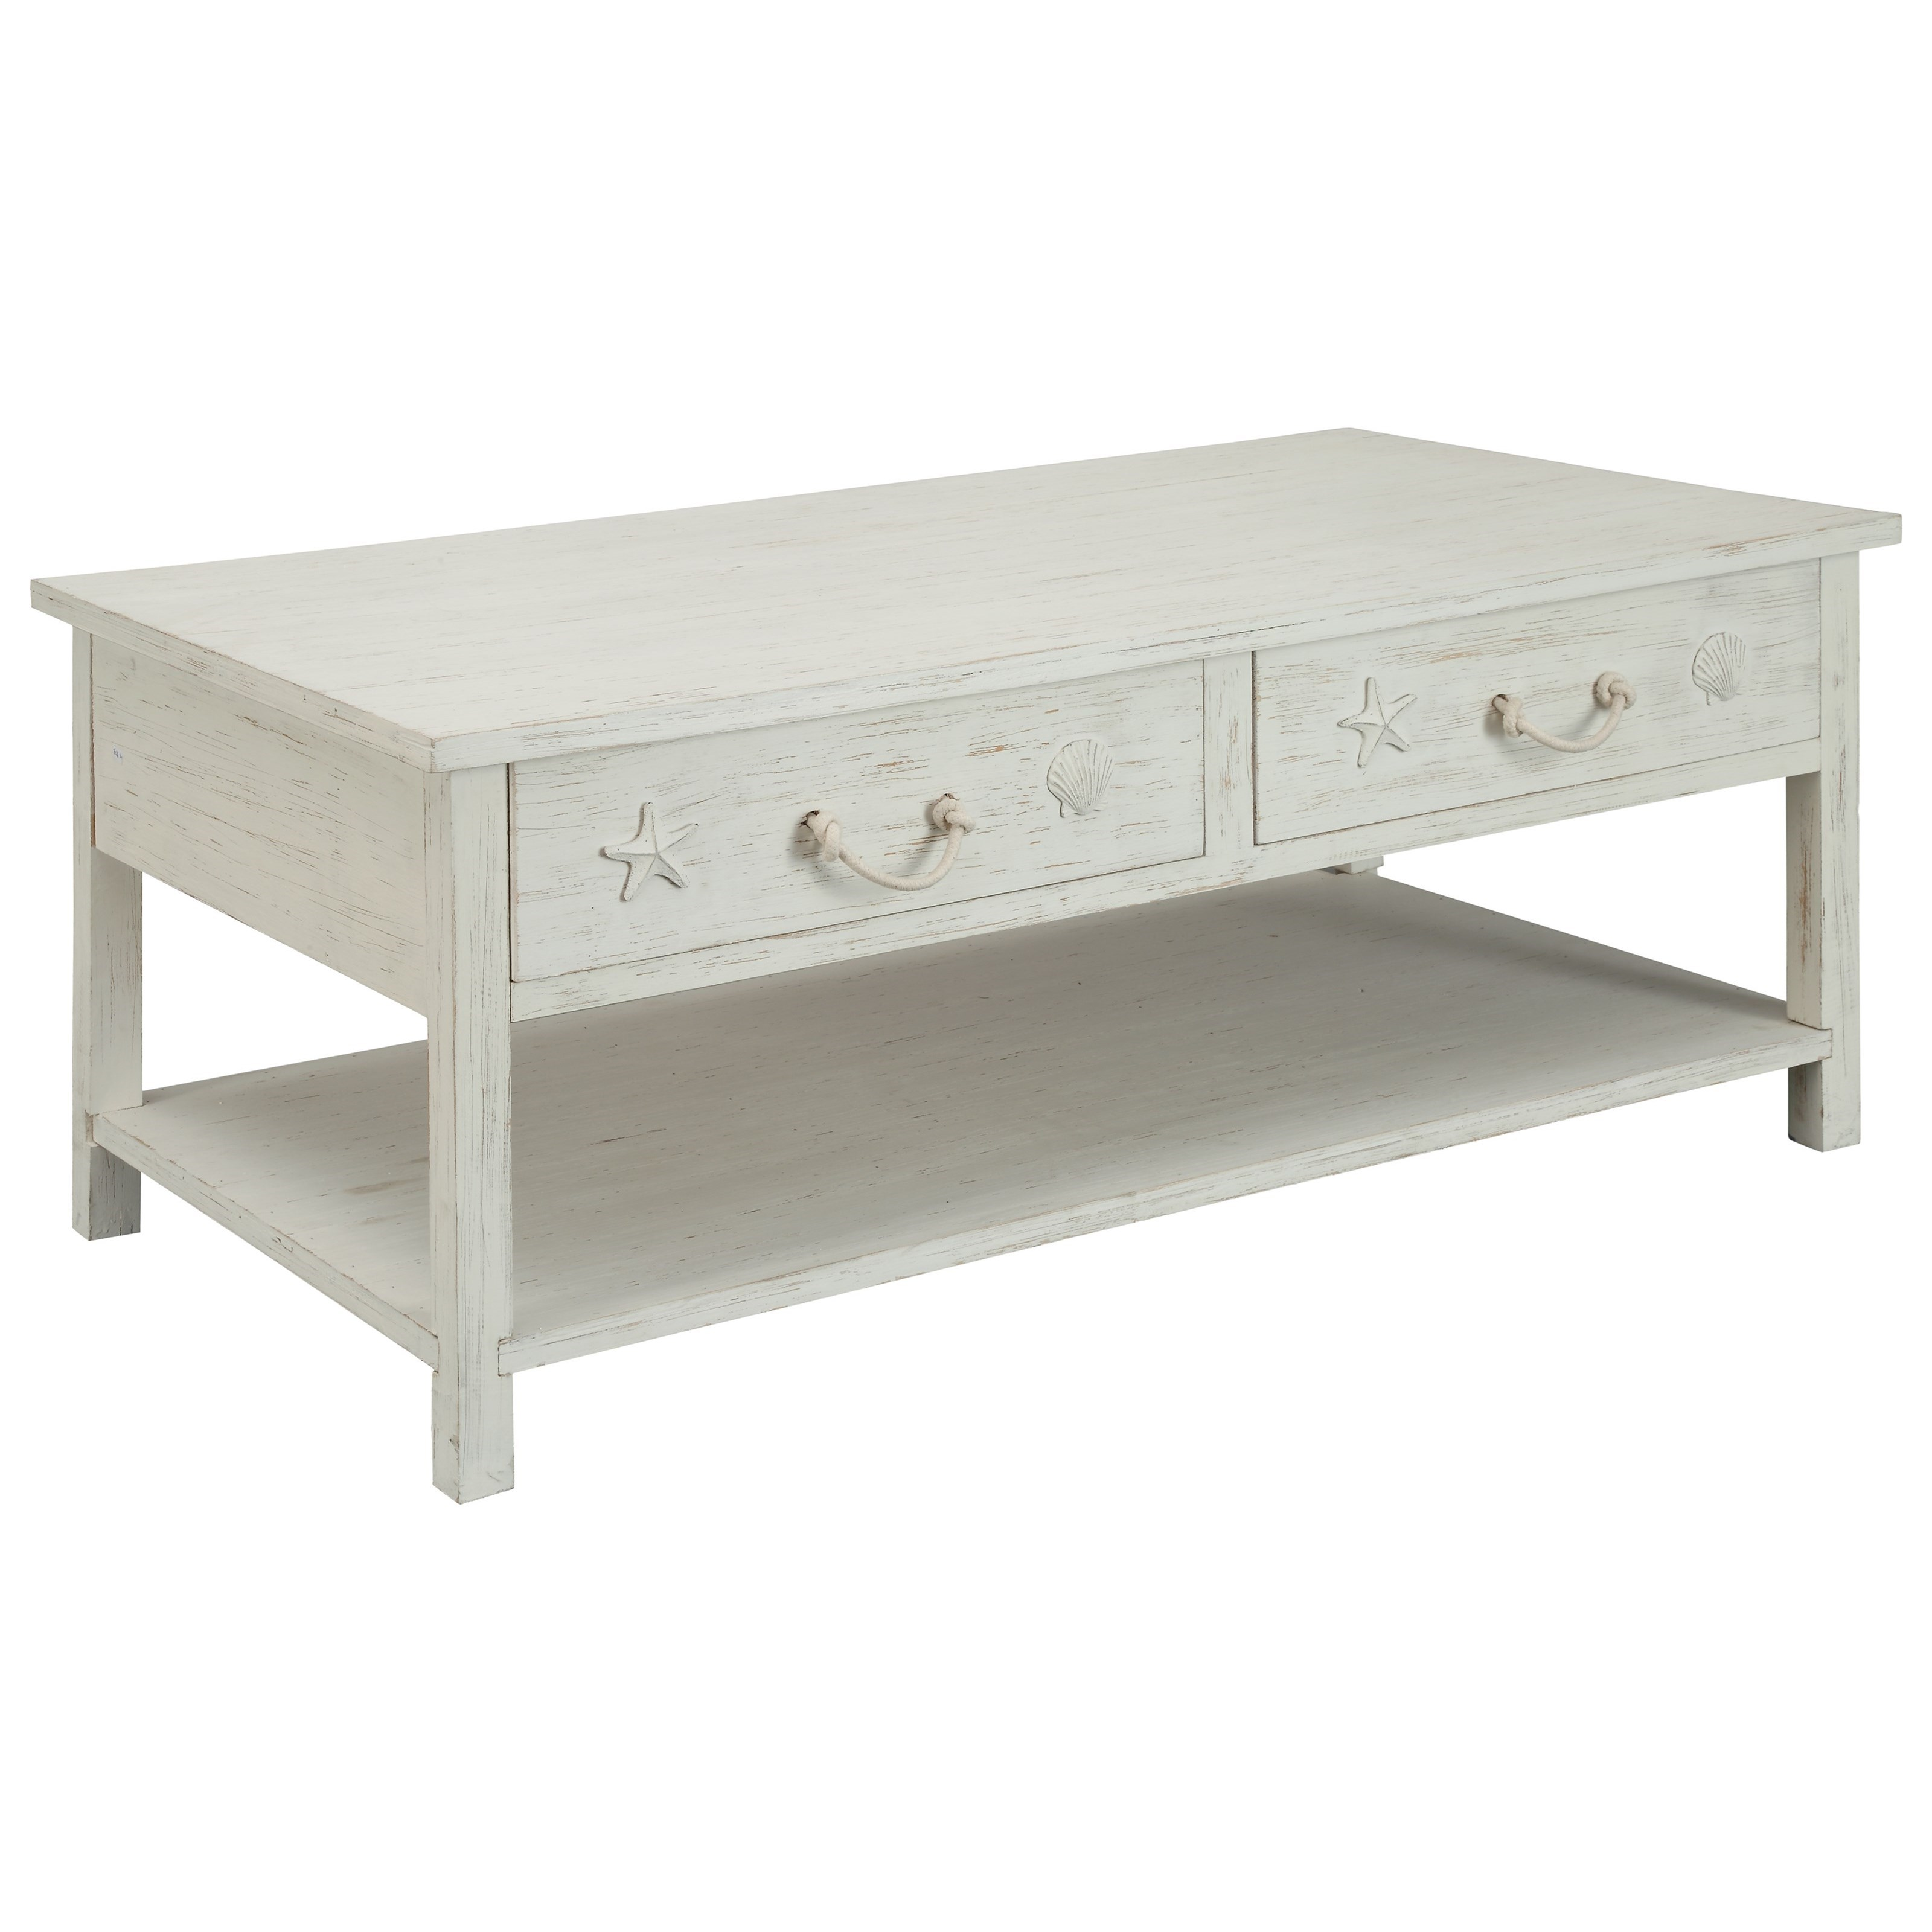 Sanibel Sanibel Four Drawer Cocktail Table by Coast to Coast Imports at Johnny Janosik